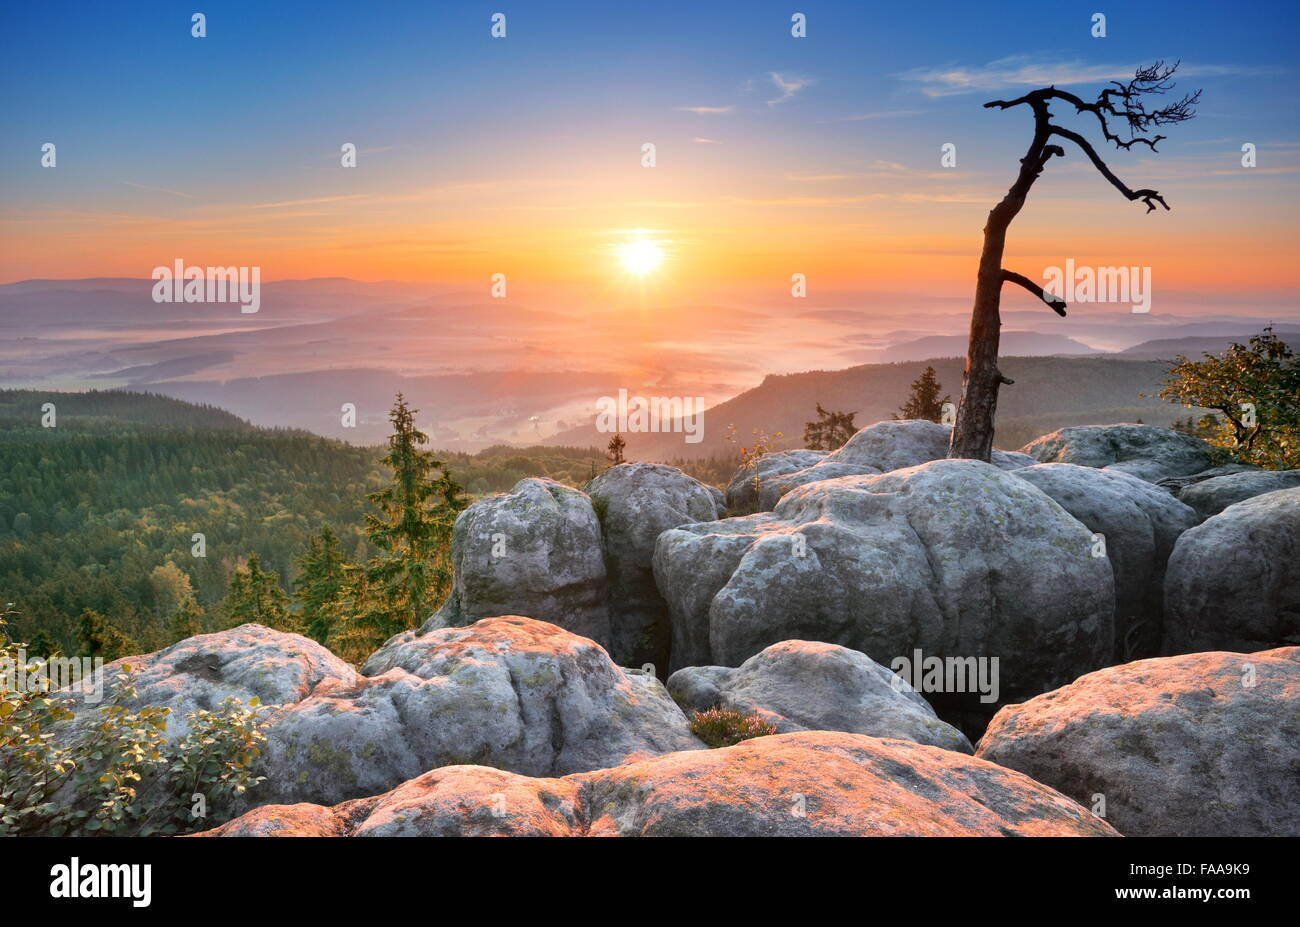 Single alone tree landscape at Sudety Mountains at sunrise, National Park, Poland - Stock Image